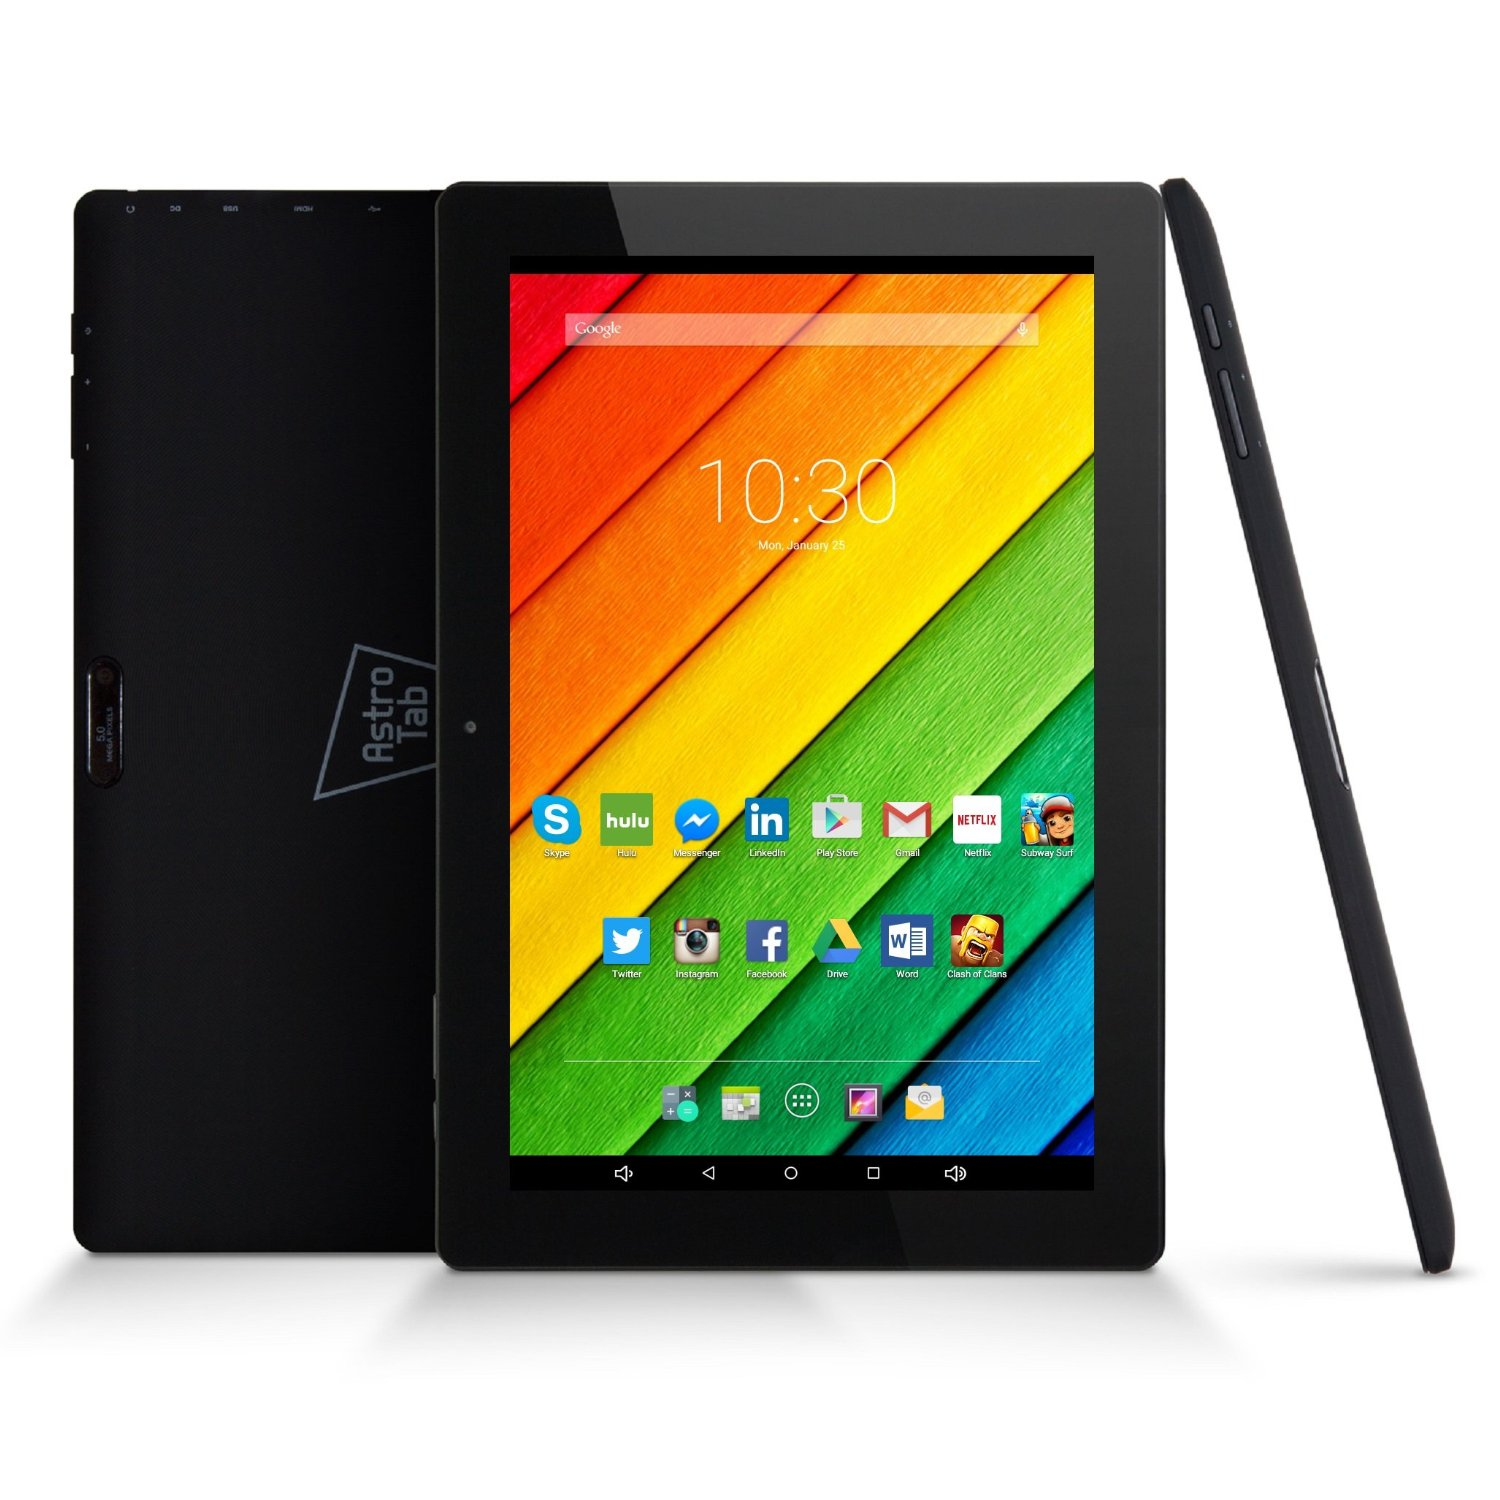 Astro tab a10 best tablets under 100 for Table th 100